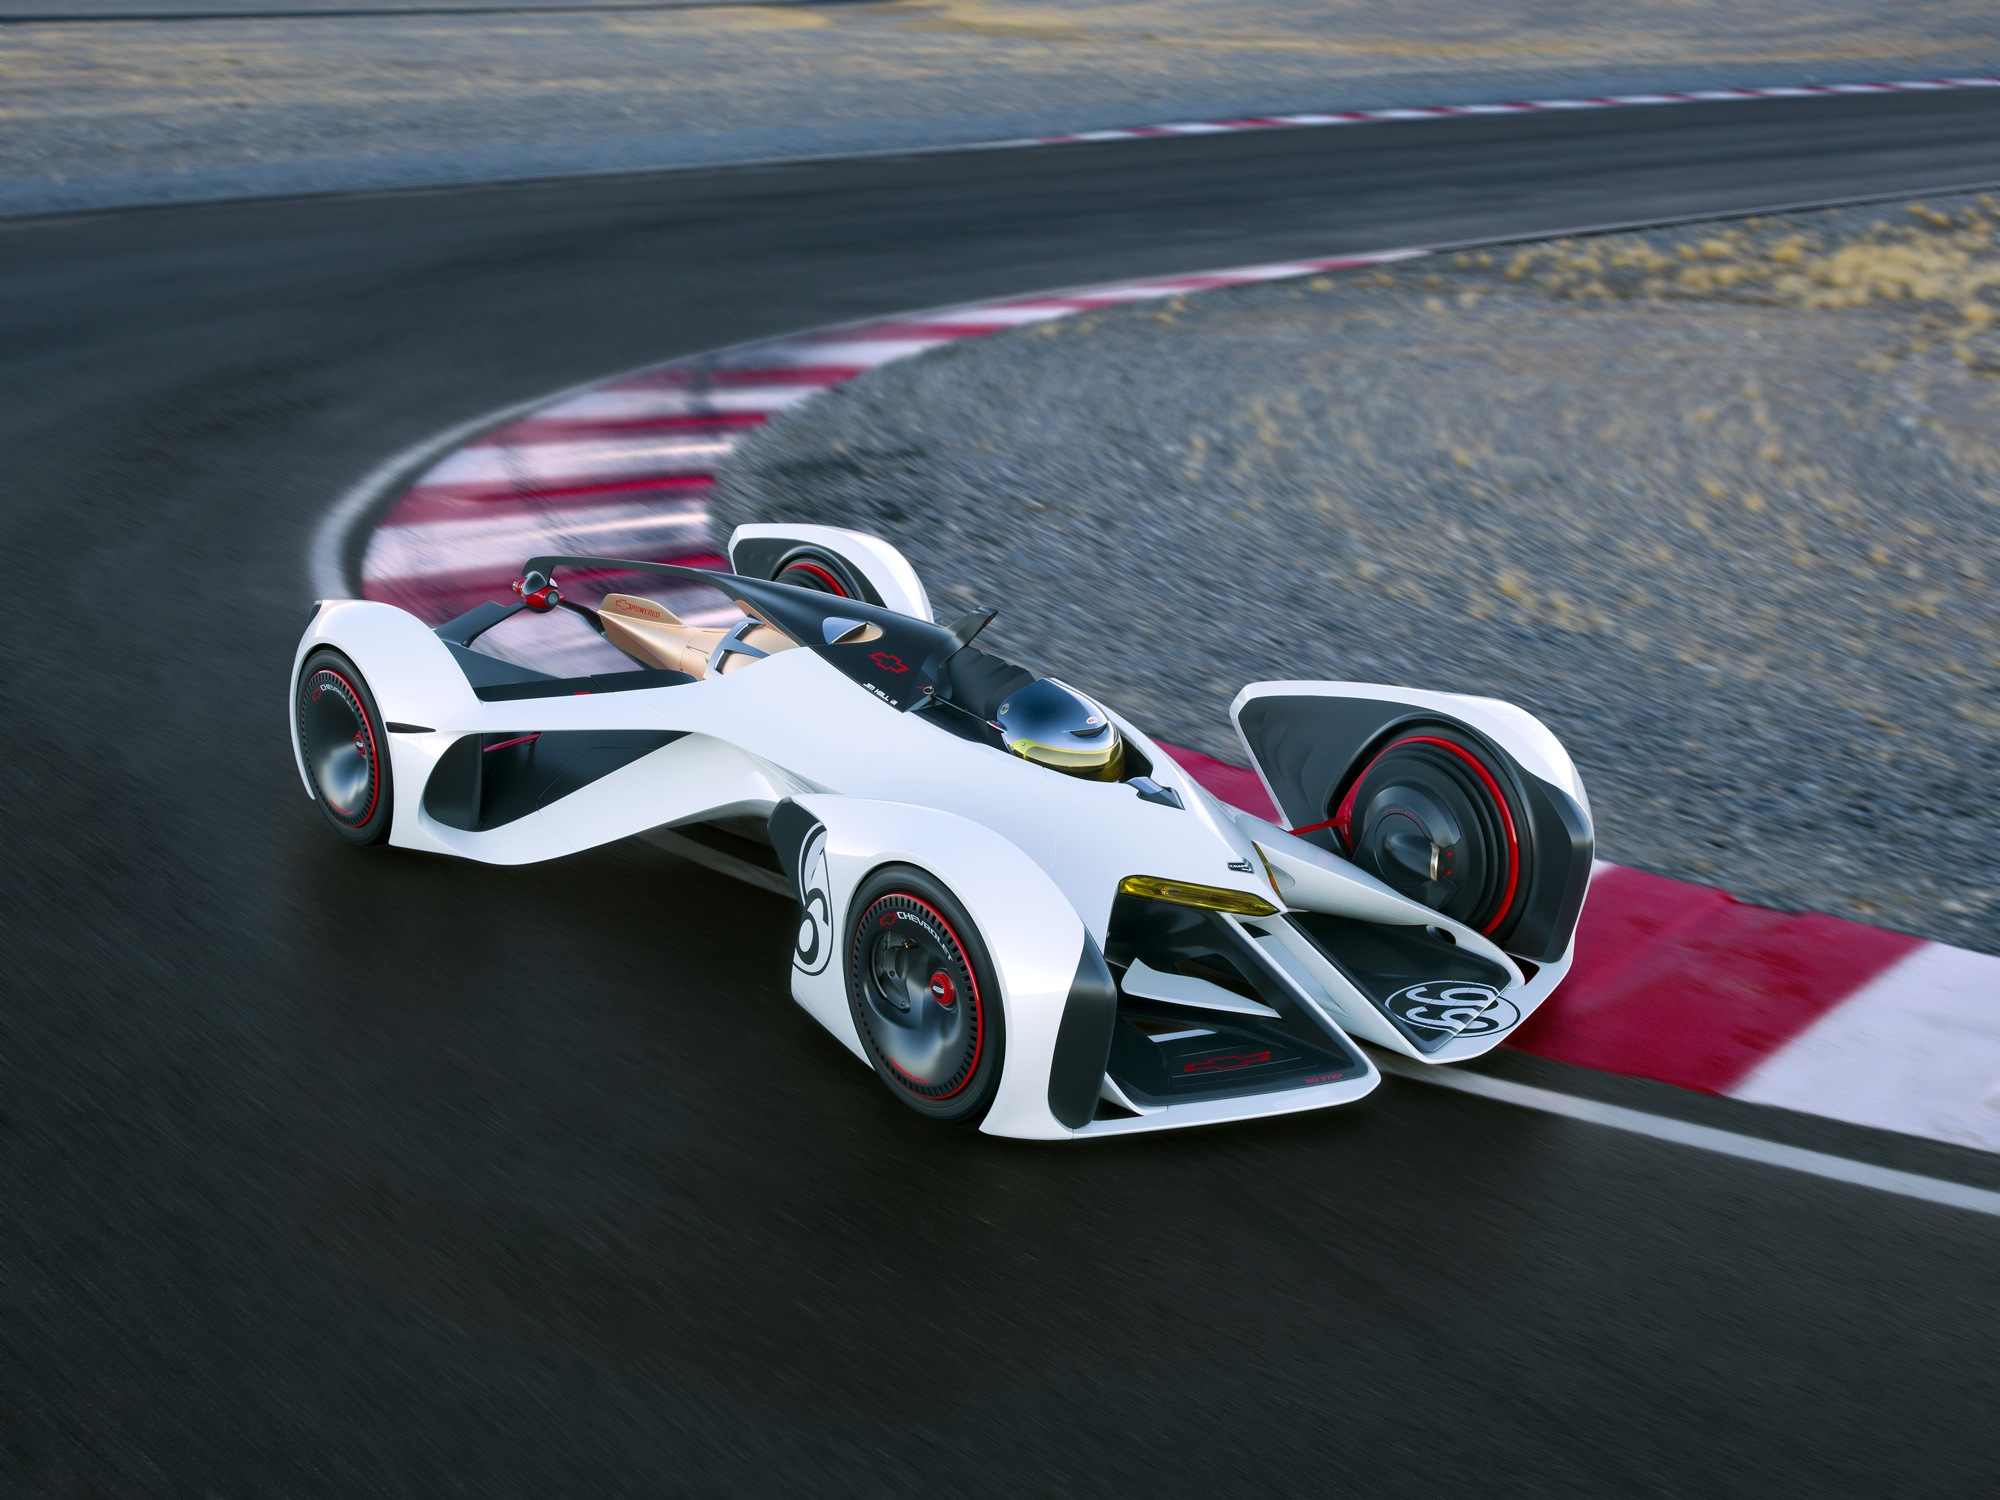 2x 2x Chevrolet Chaparral 2x Vision Gran Turismo Gm Authority